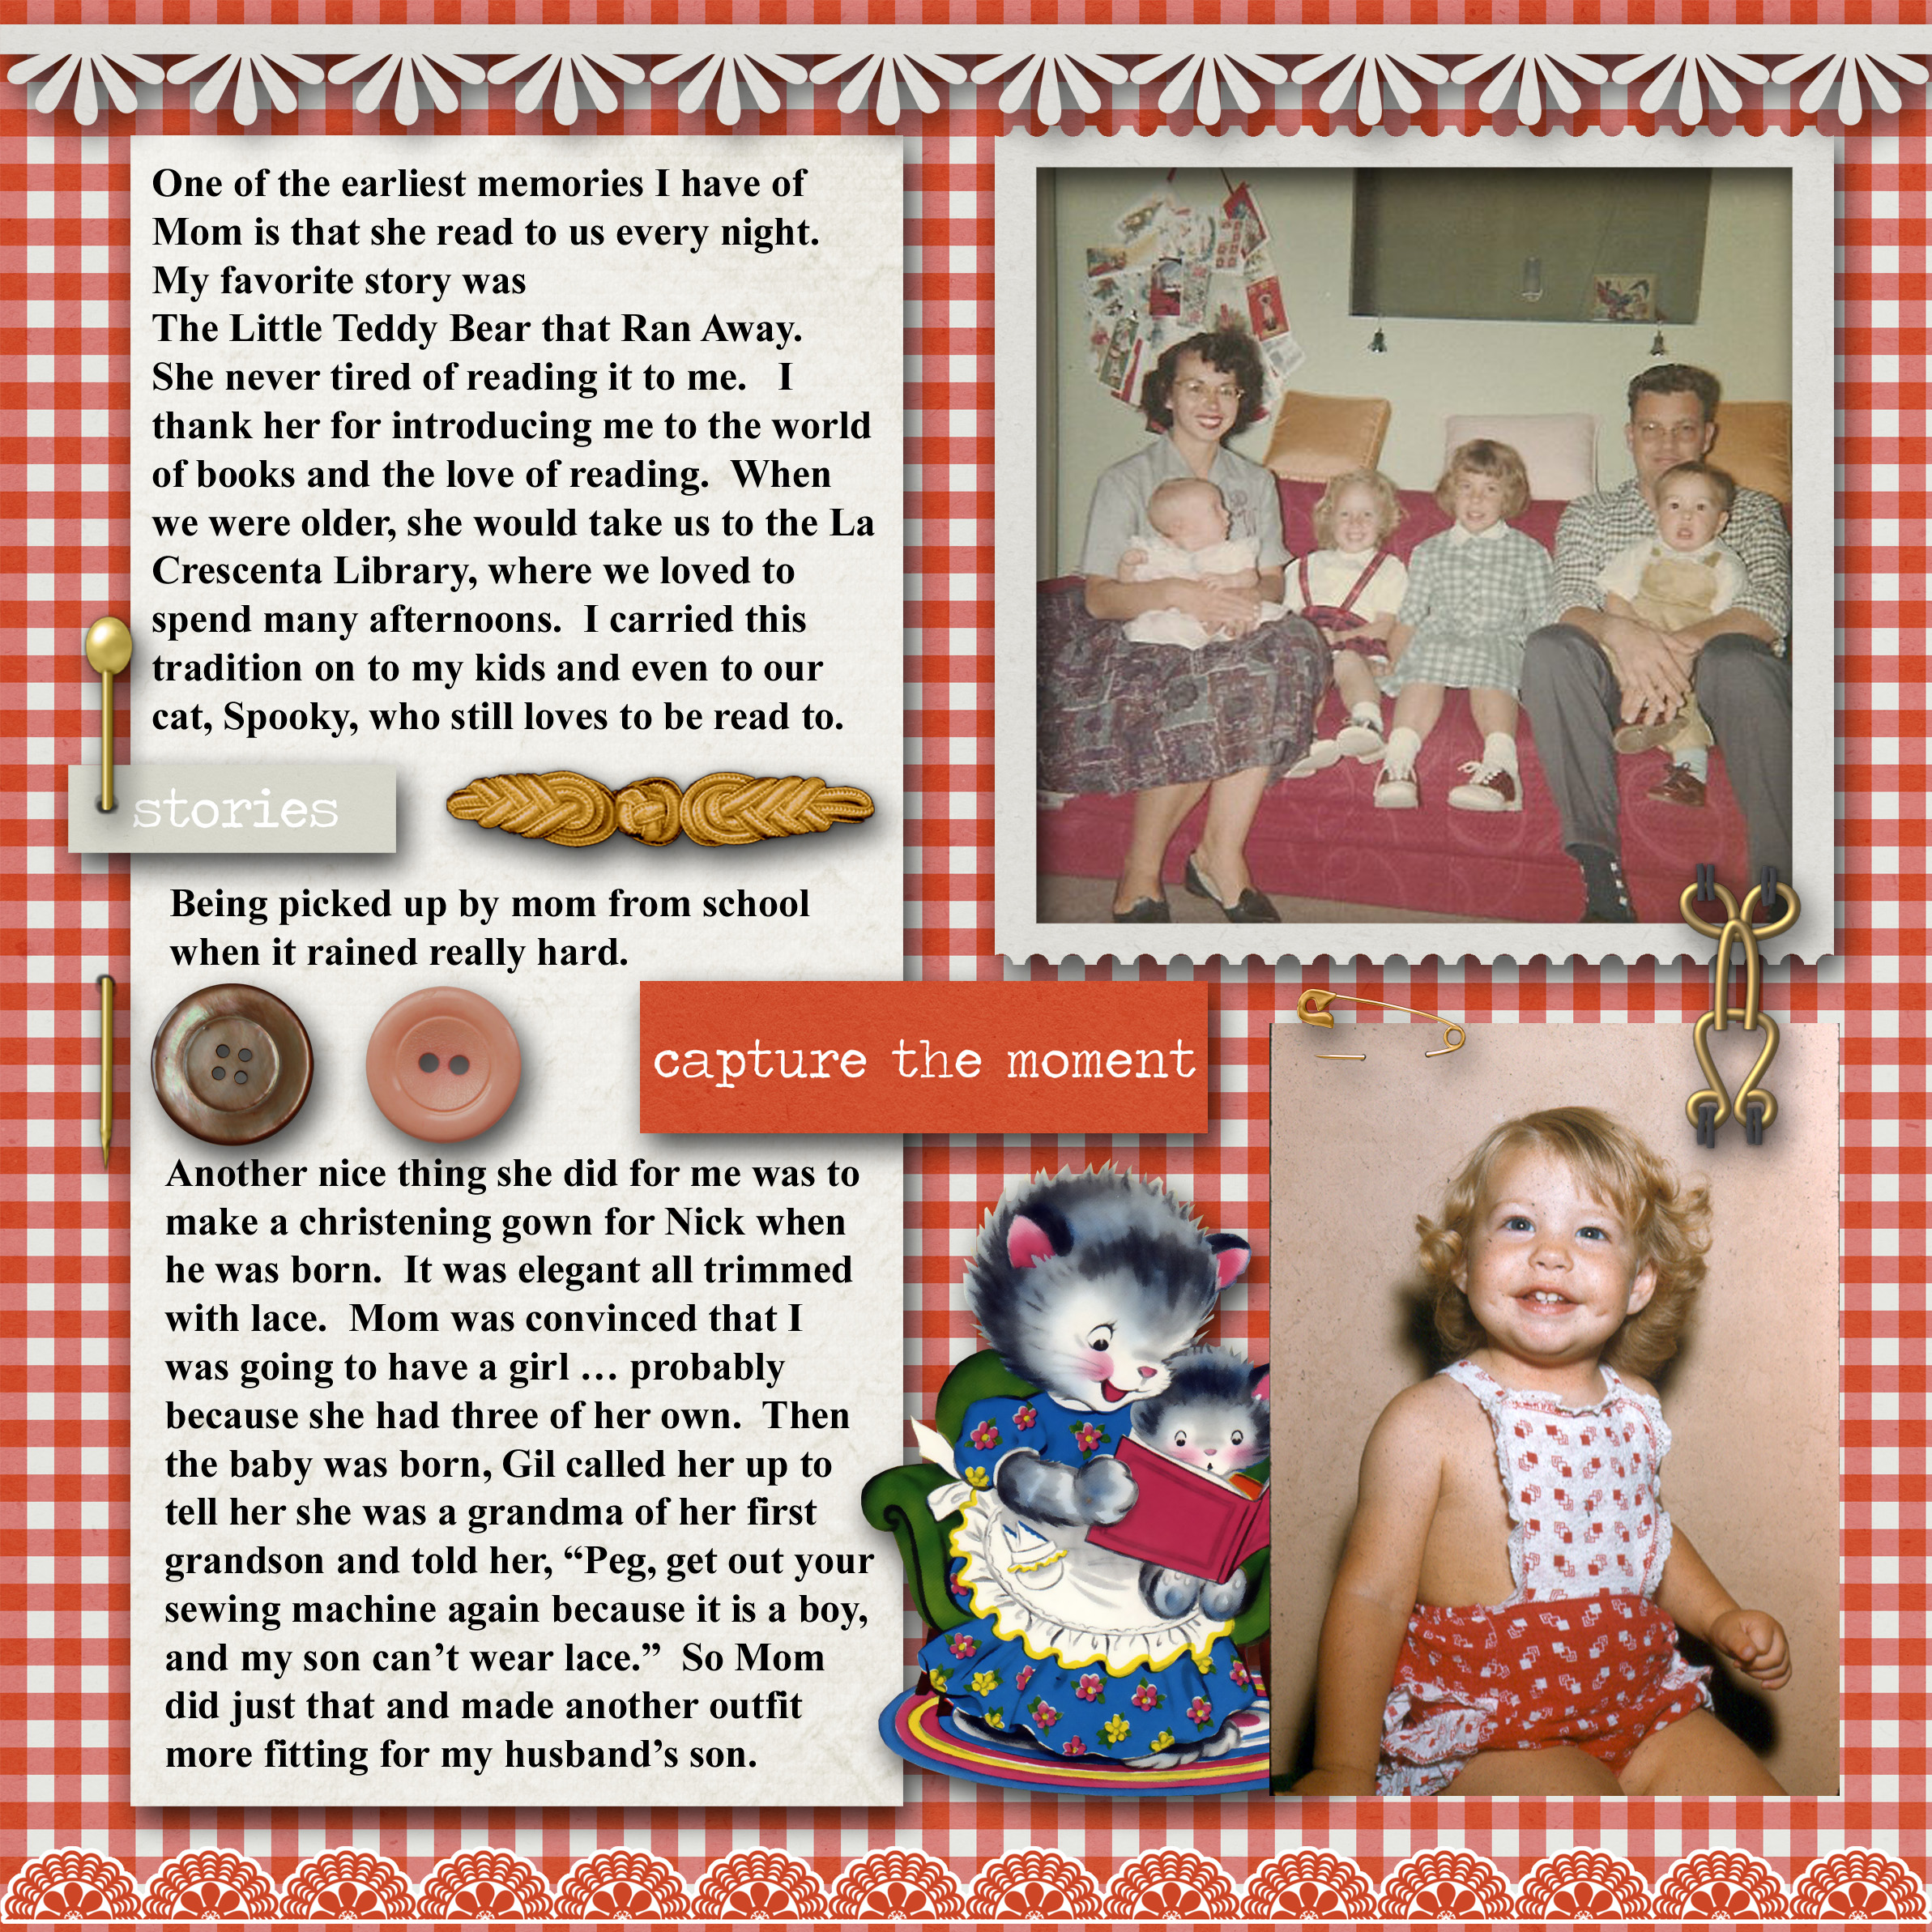 How to make scrapbook for husband - Memories Of Mom